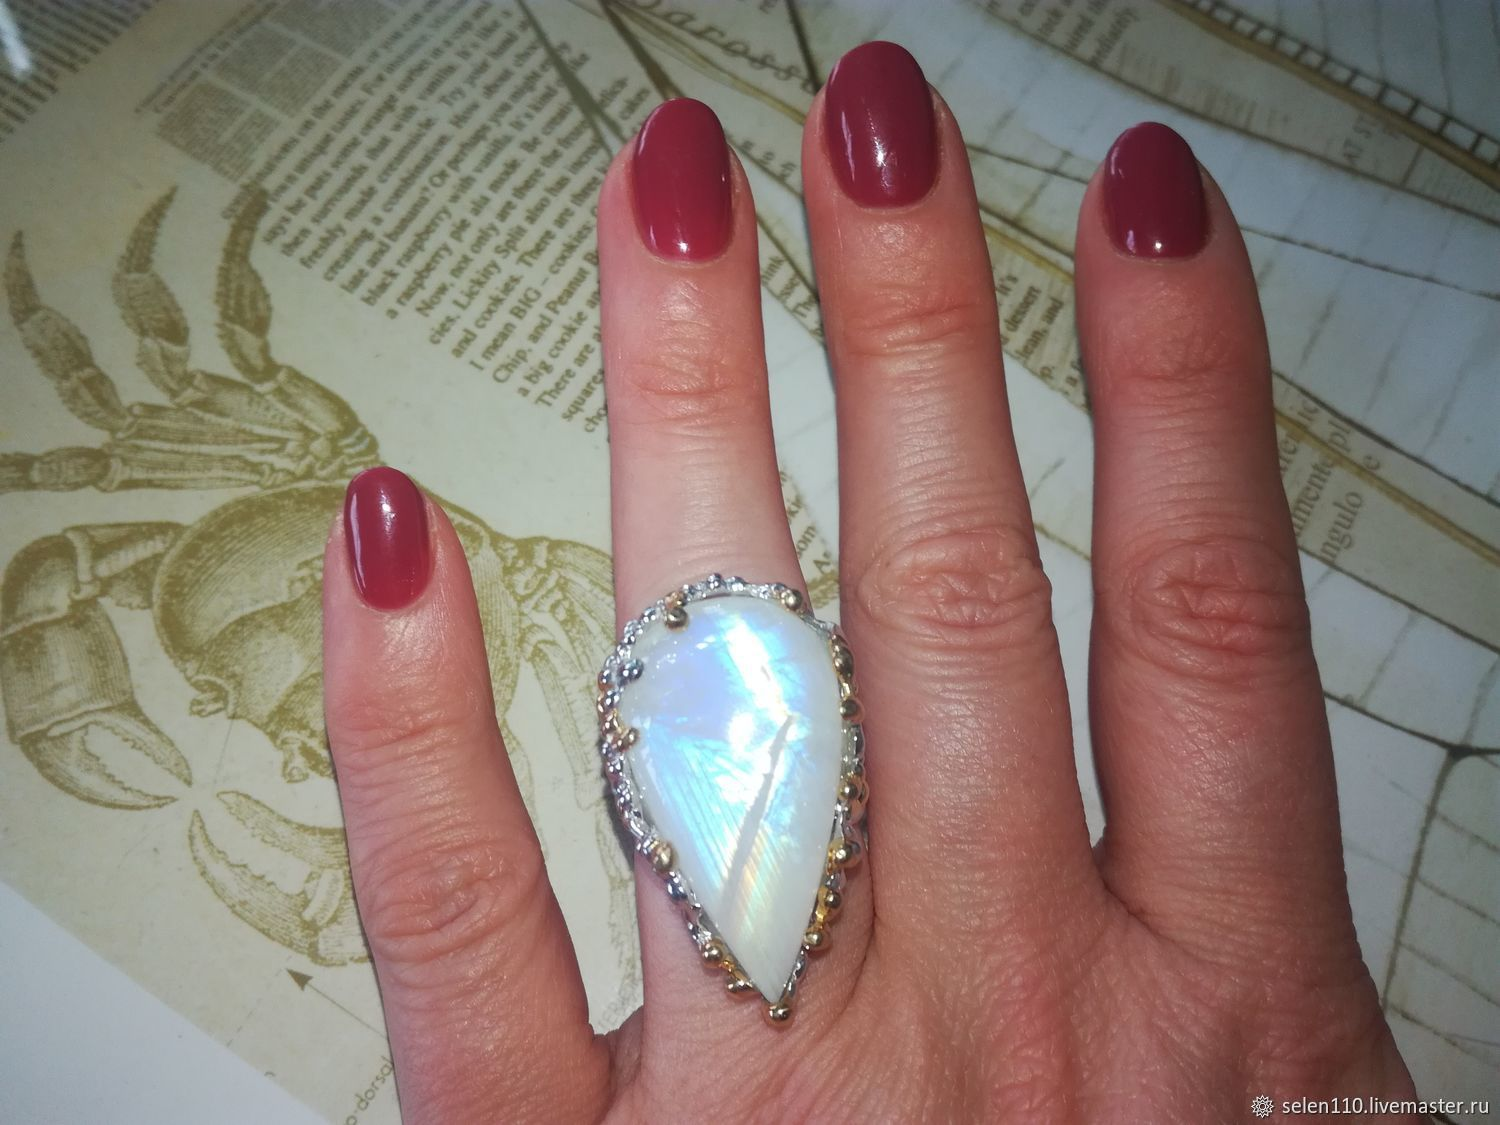 Ring 'Reflection' with natural moonstone (absrom), Rings, Voronezh,  Фото №1